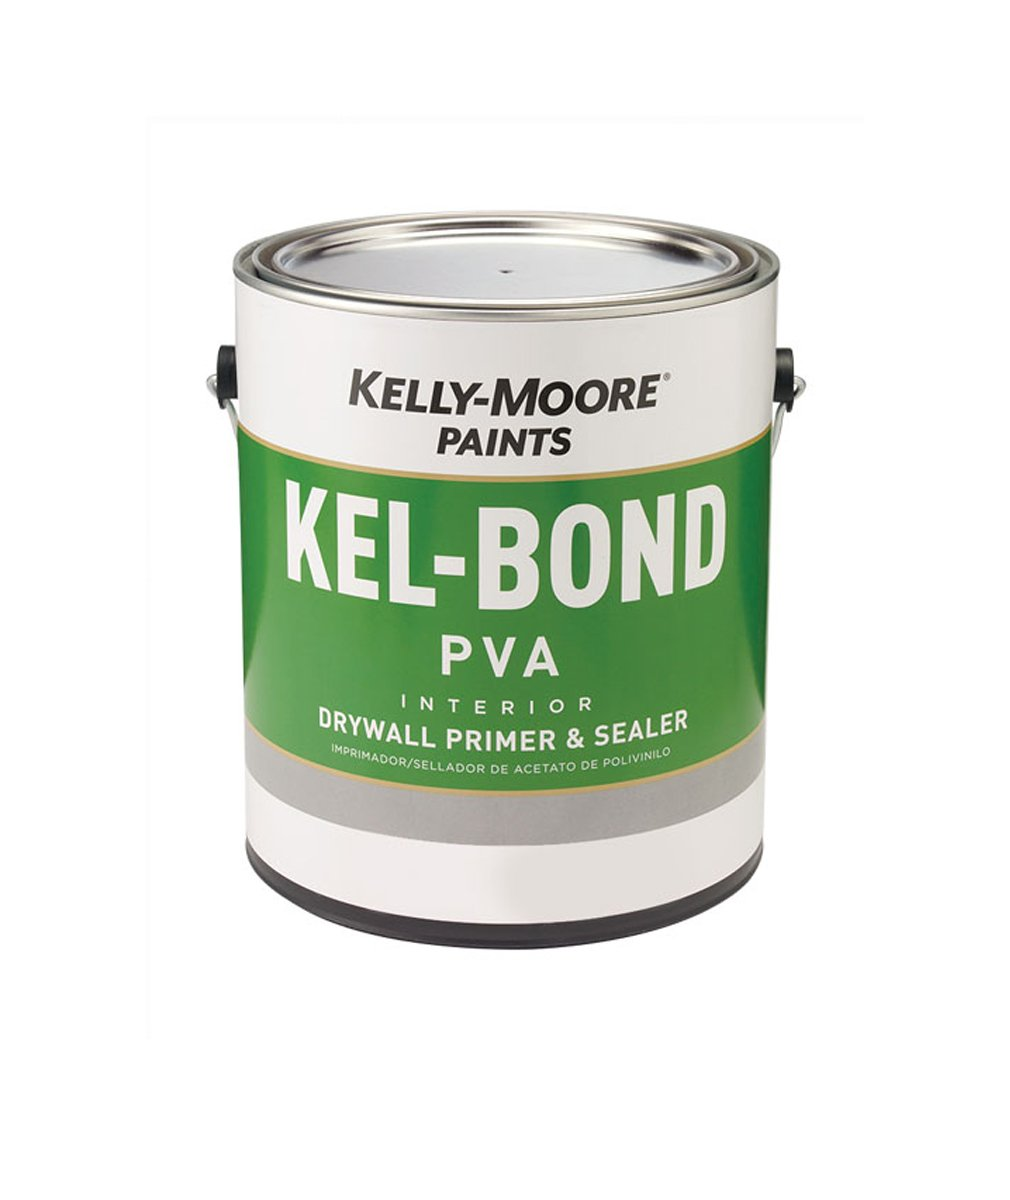 Kel-Bond PVA Primer, available at Kelly-Moore Paints for Contractors.